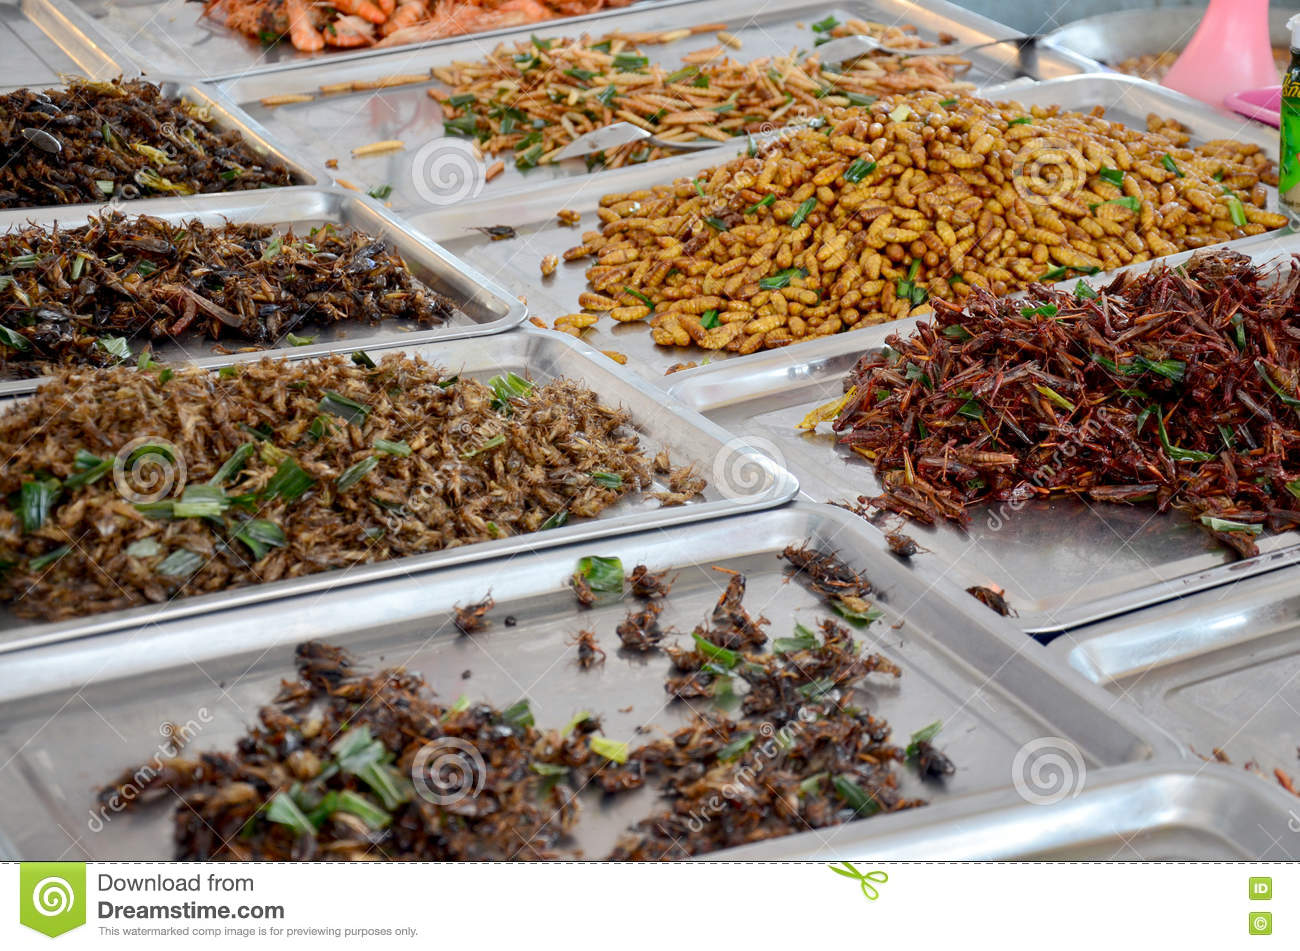 Exotic food fried Insect